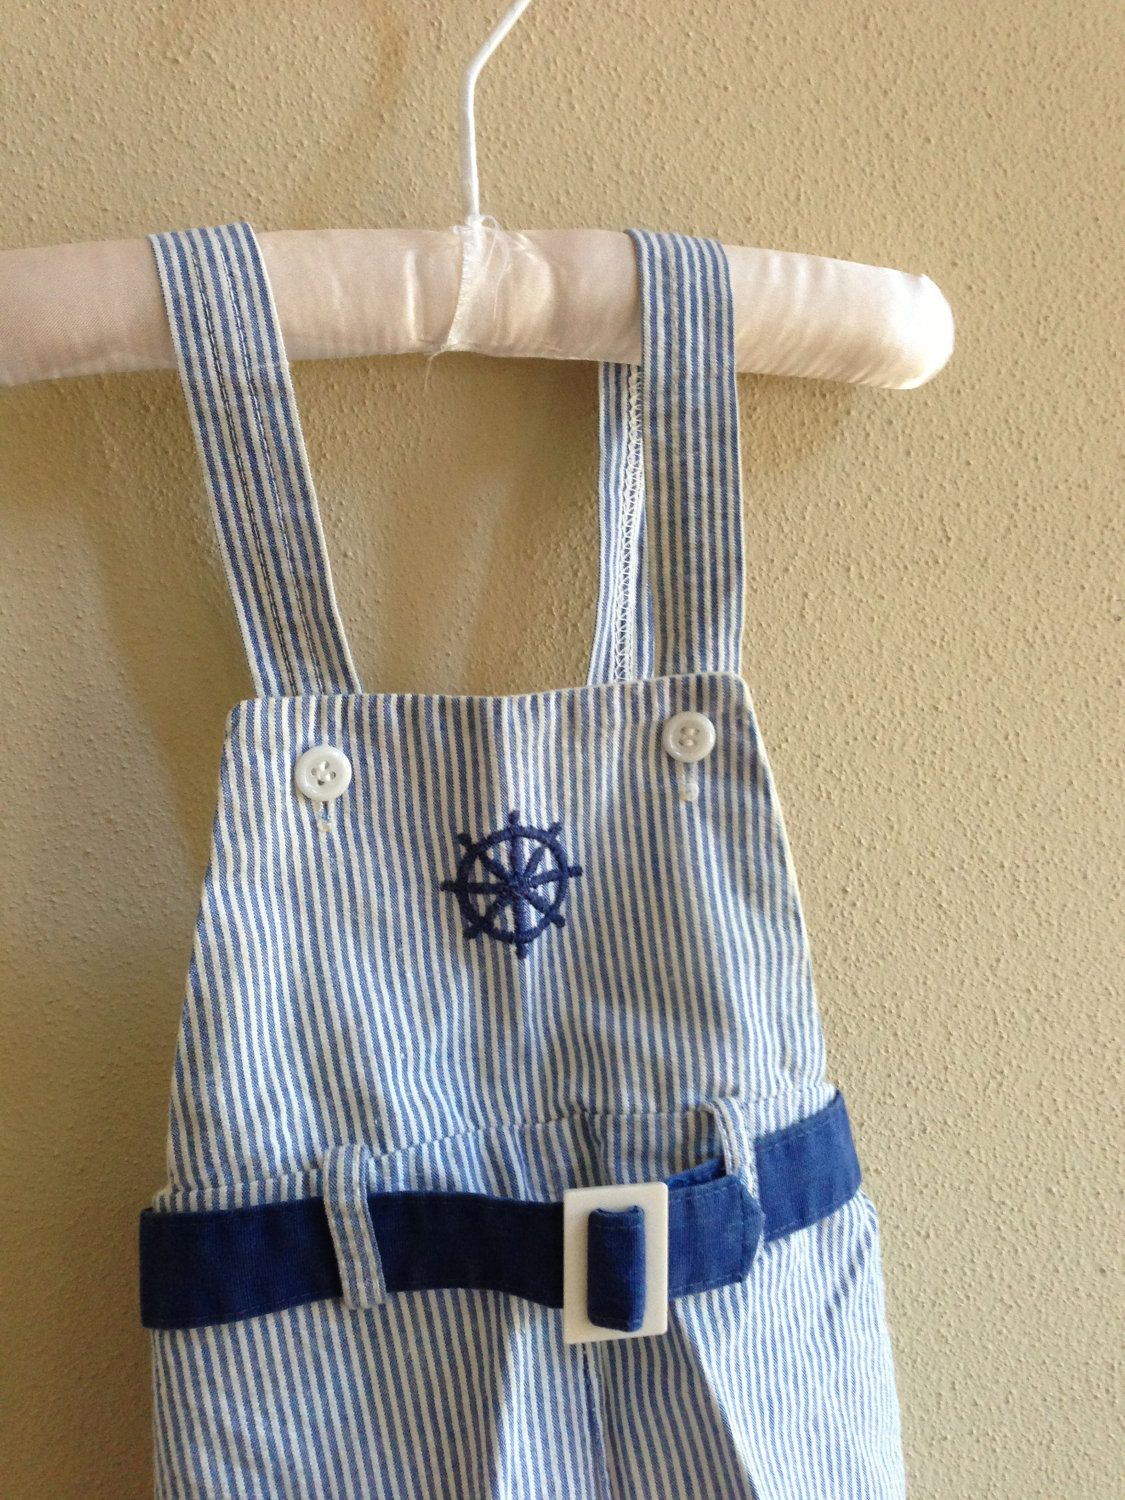 Vintage Seersucker Baby Romper by CleverlyCurated on Etsy, $10.00